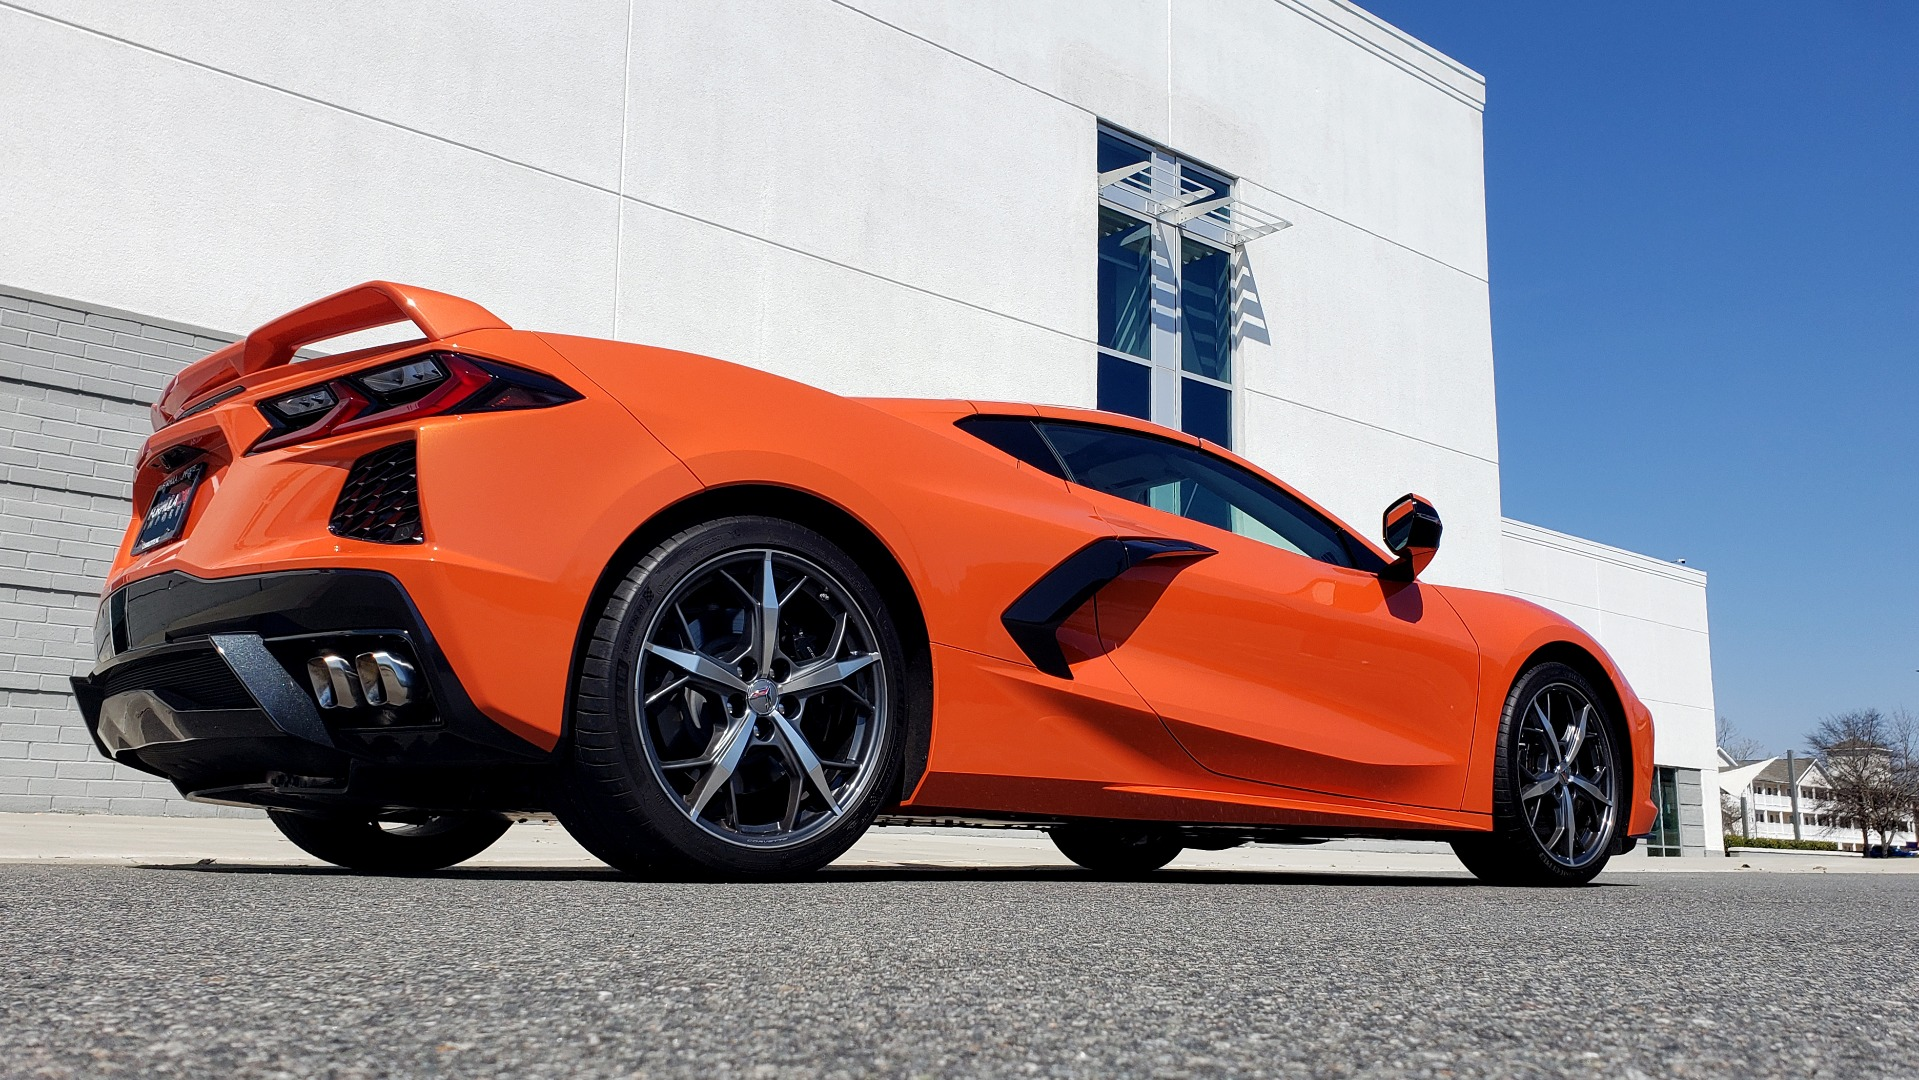 Used 2020 Chevrolet CORVETTE C8 STINGRAY 3LT COUPE / NAV / BOSE / CAMERA / LIKE NEW for sale Sold at Formula Imports in Charlotte NC 28227 9